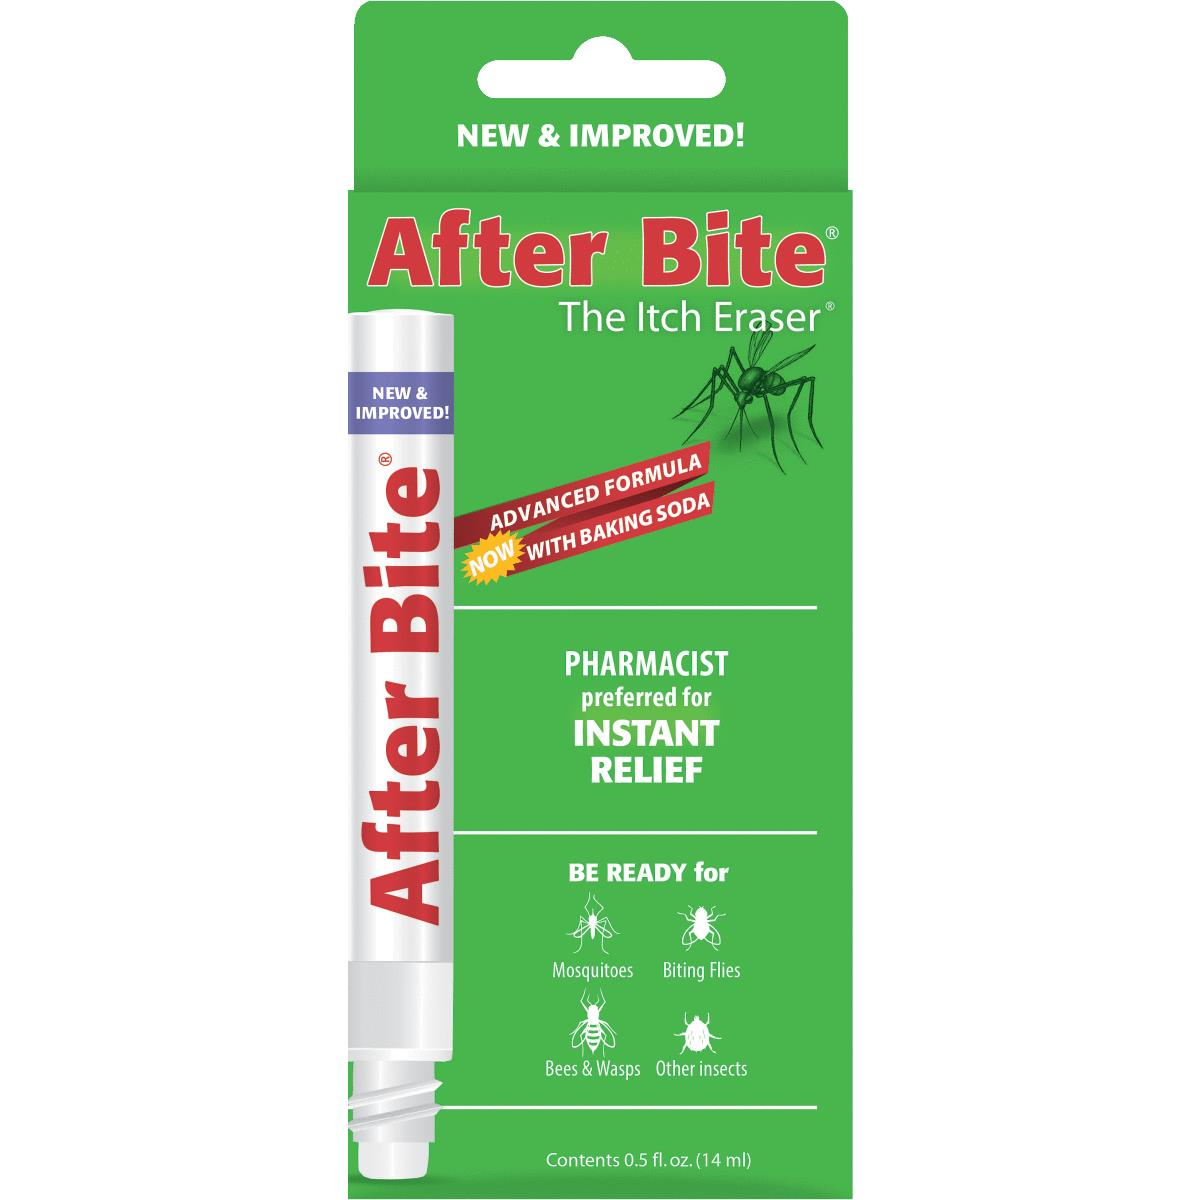 AfterBite Insect Bite Treatment